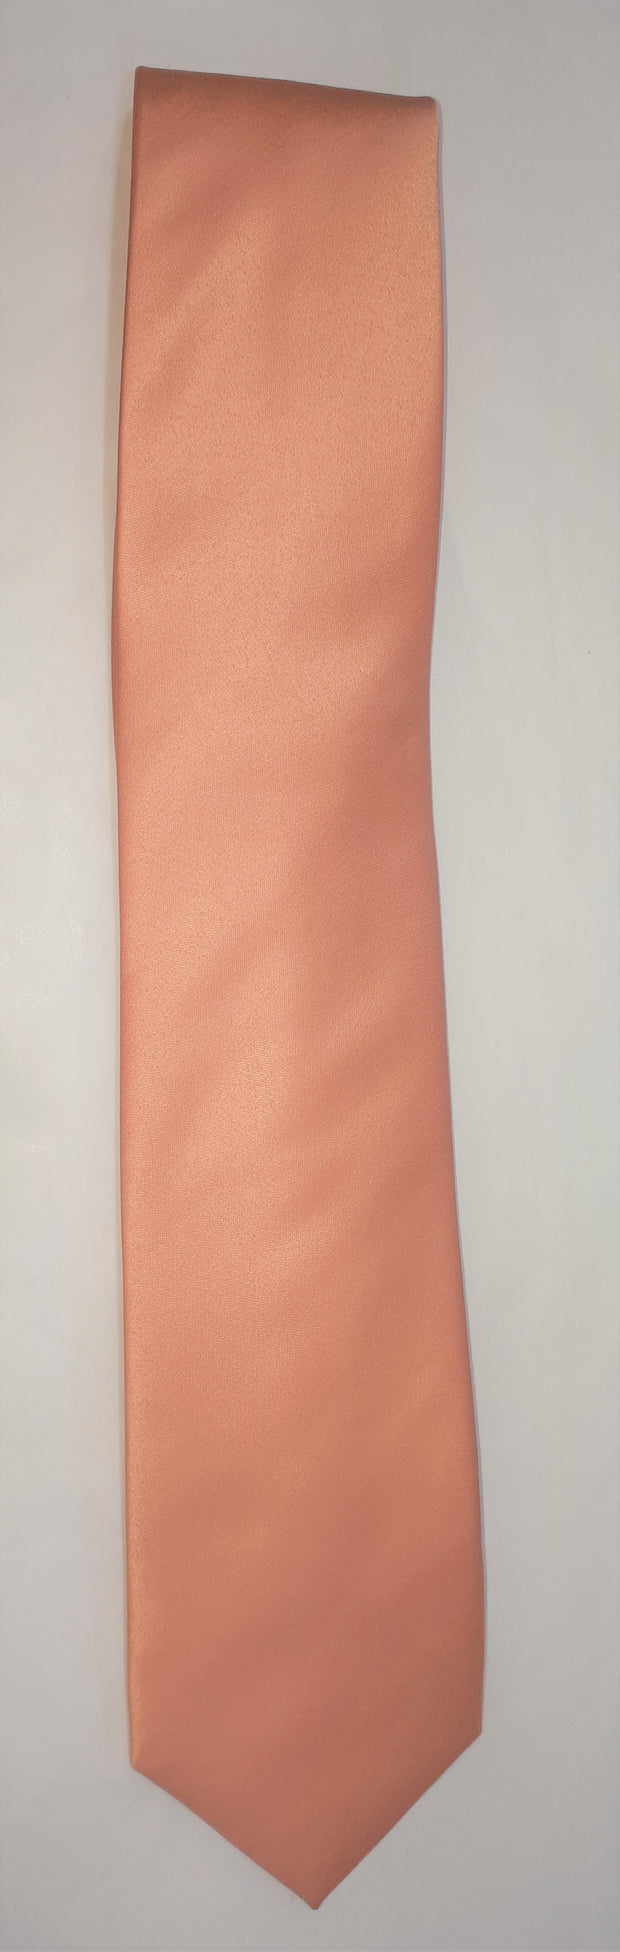 FORMAL SATIN TIE PEACH